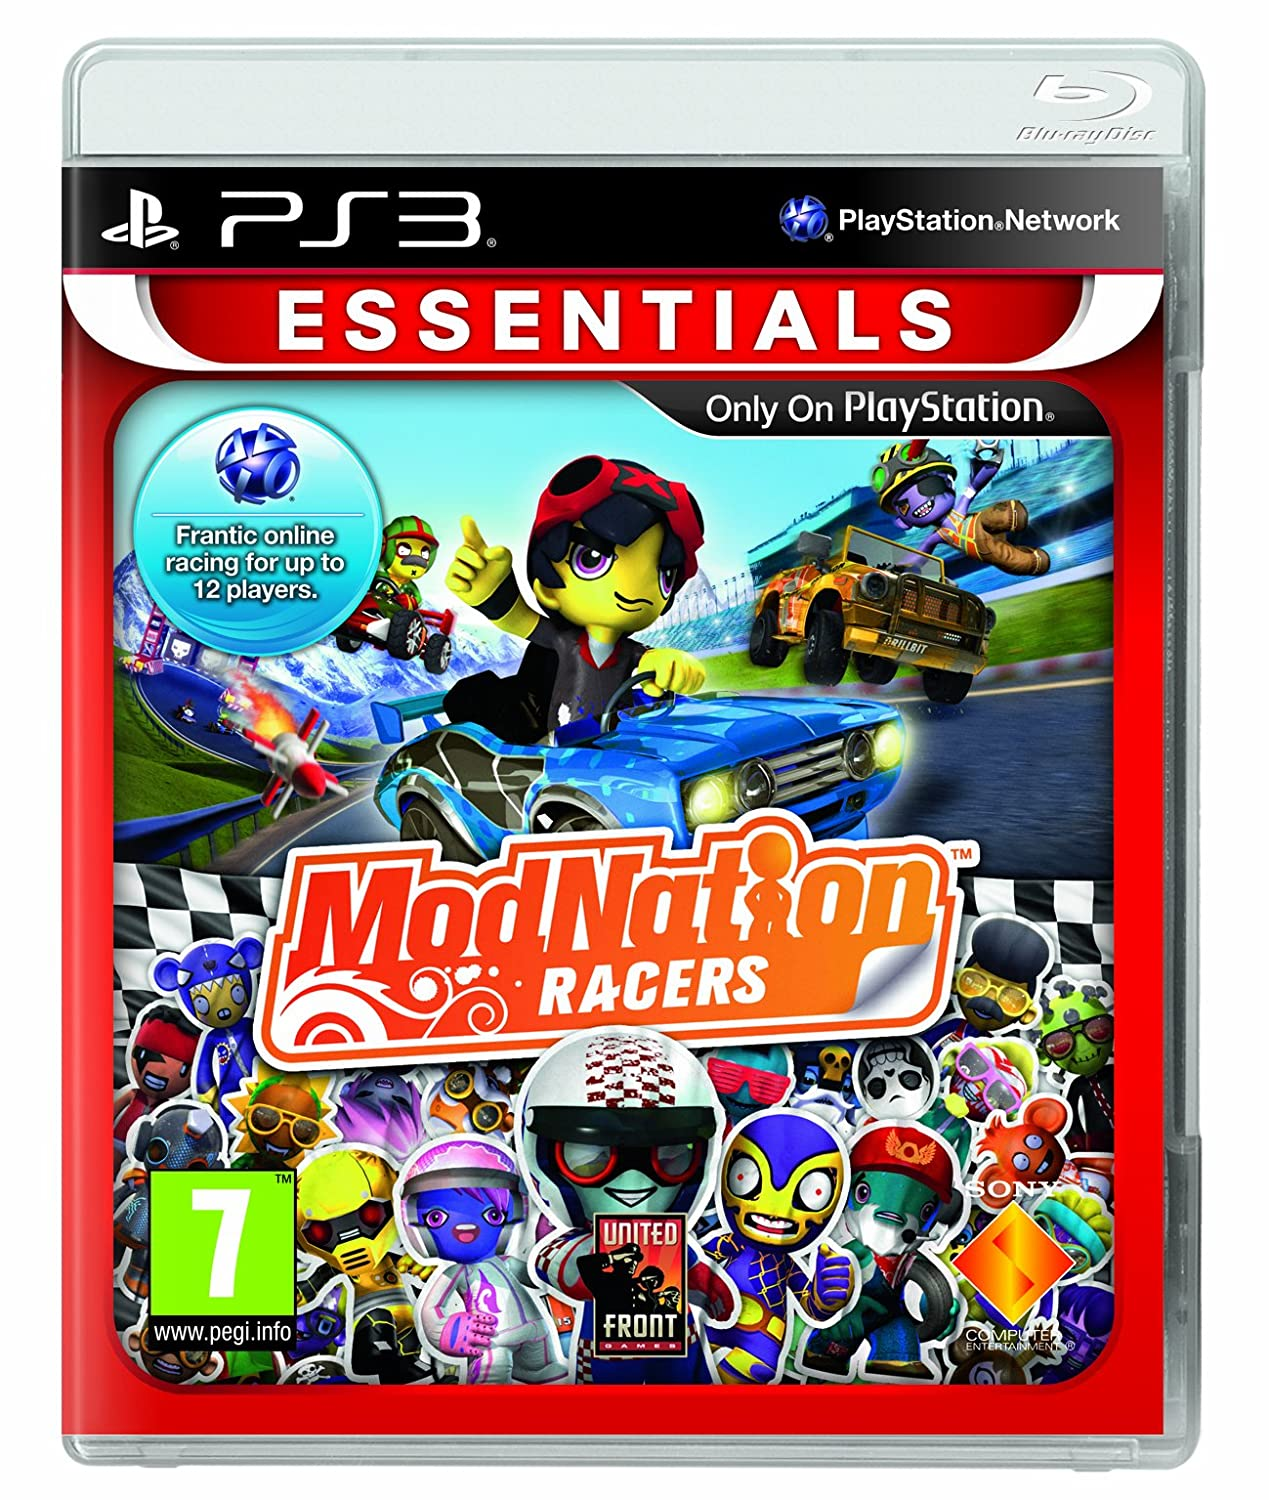 ps3 spiel modnation racers autorennen neuware ebay. Black Bedroom Furniture Sets. Home Design Ideas